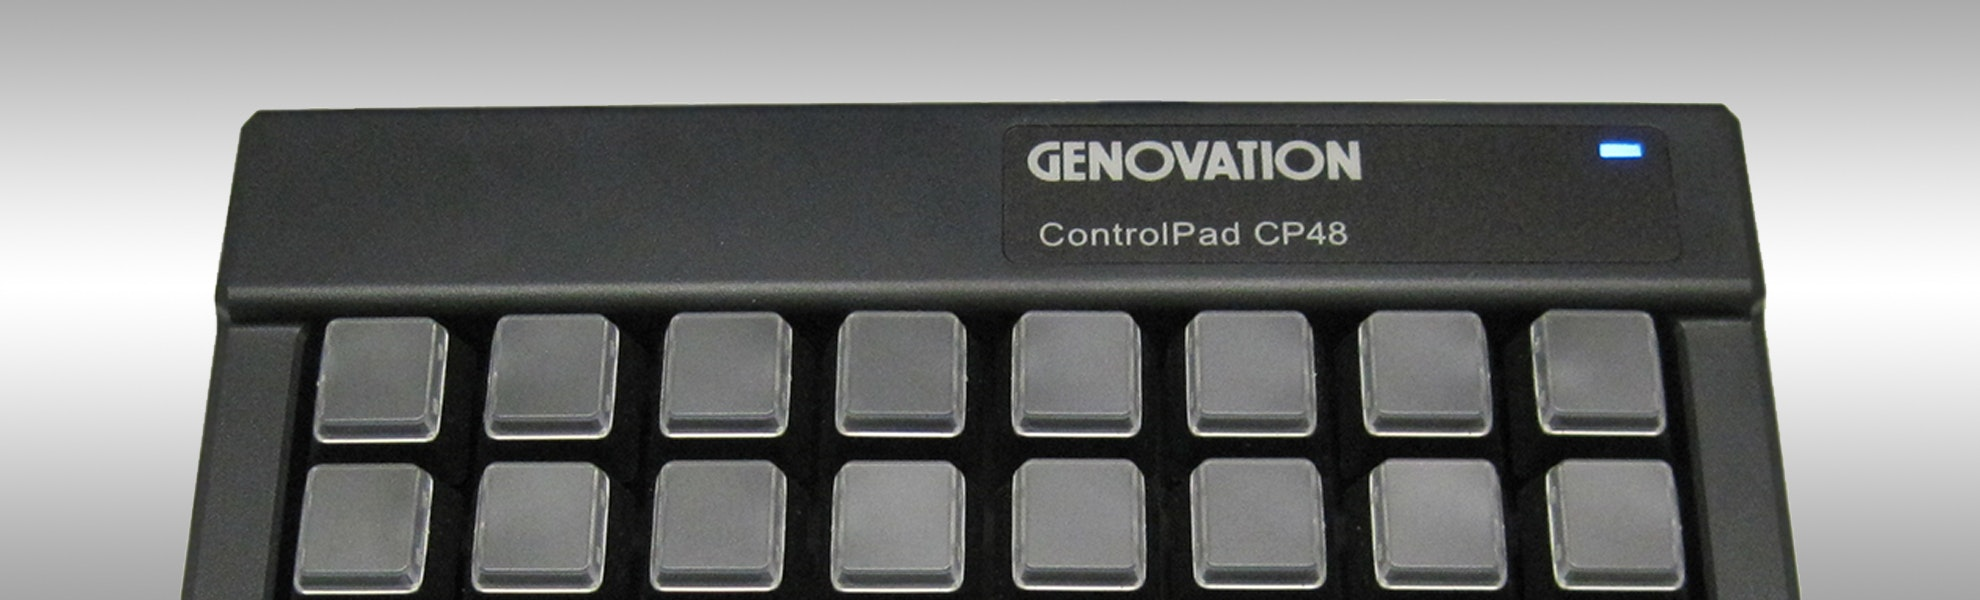 Genovation Programmable ControlPad CP48